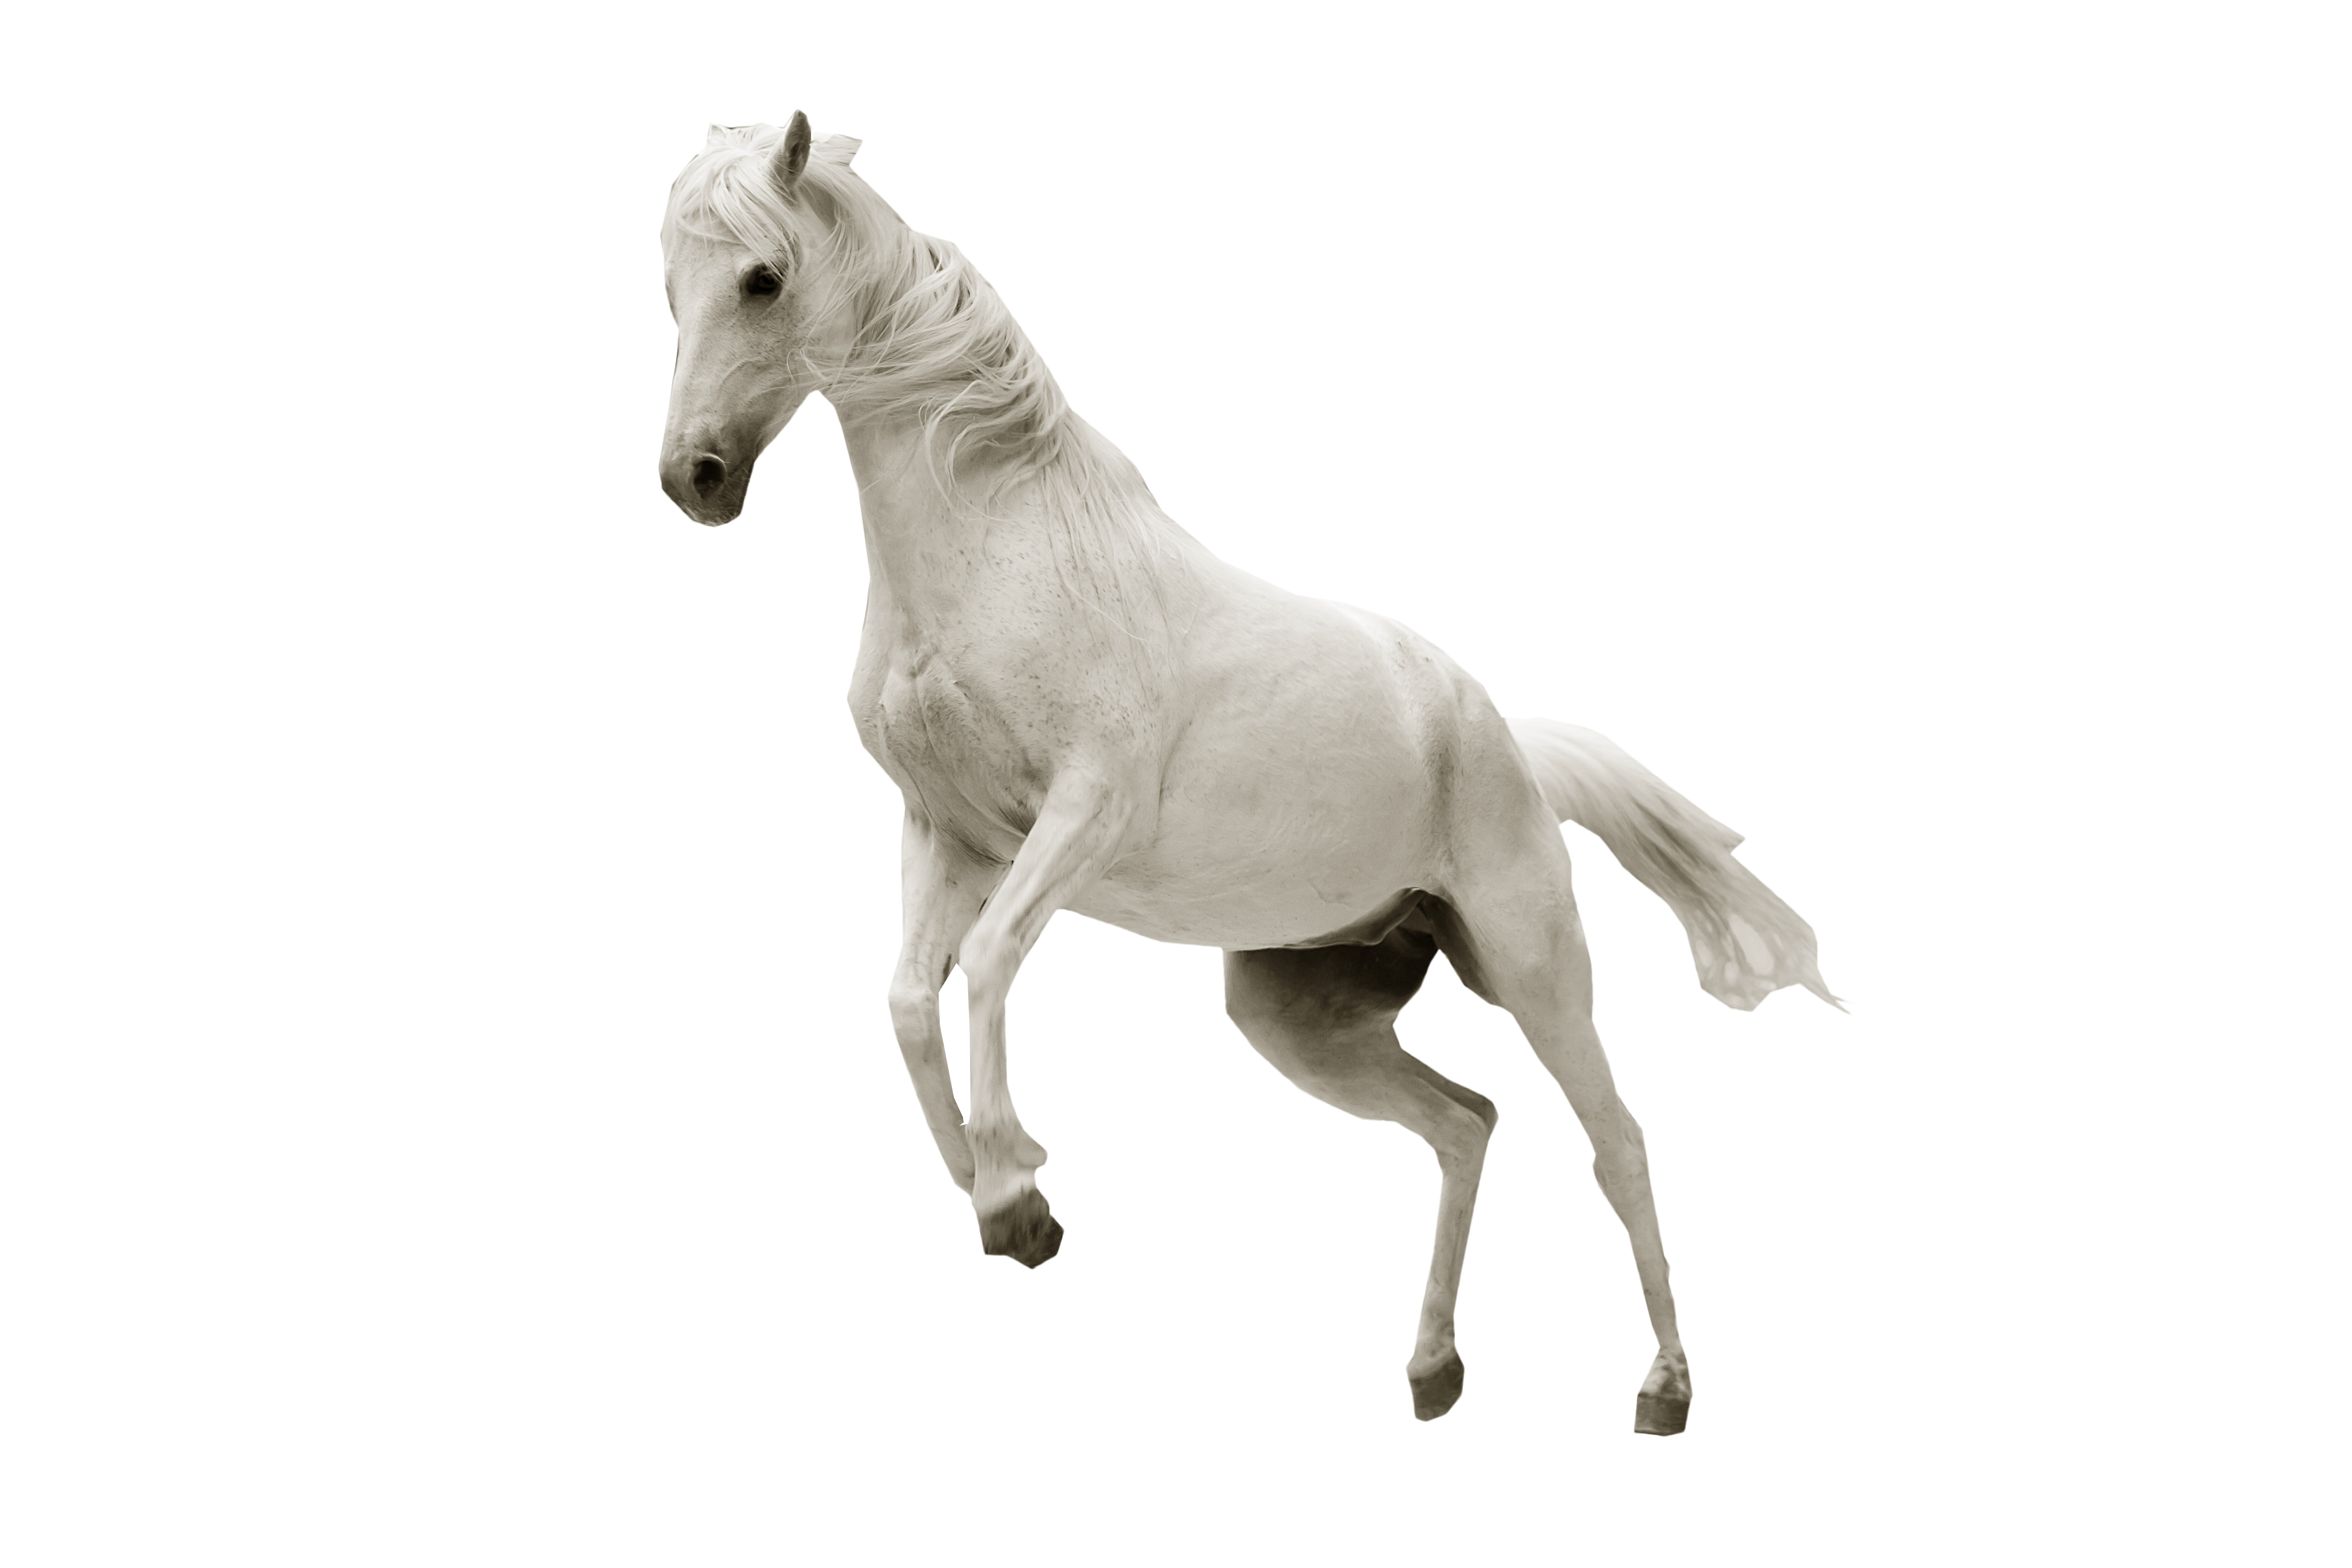 White Horse Jumping Png Image White Horse Horse Jumping Horses